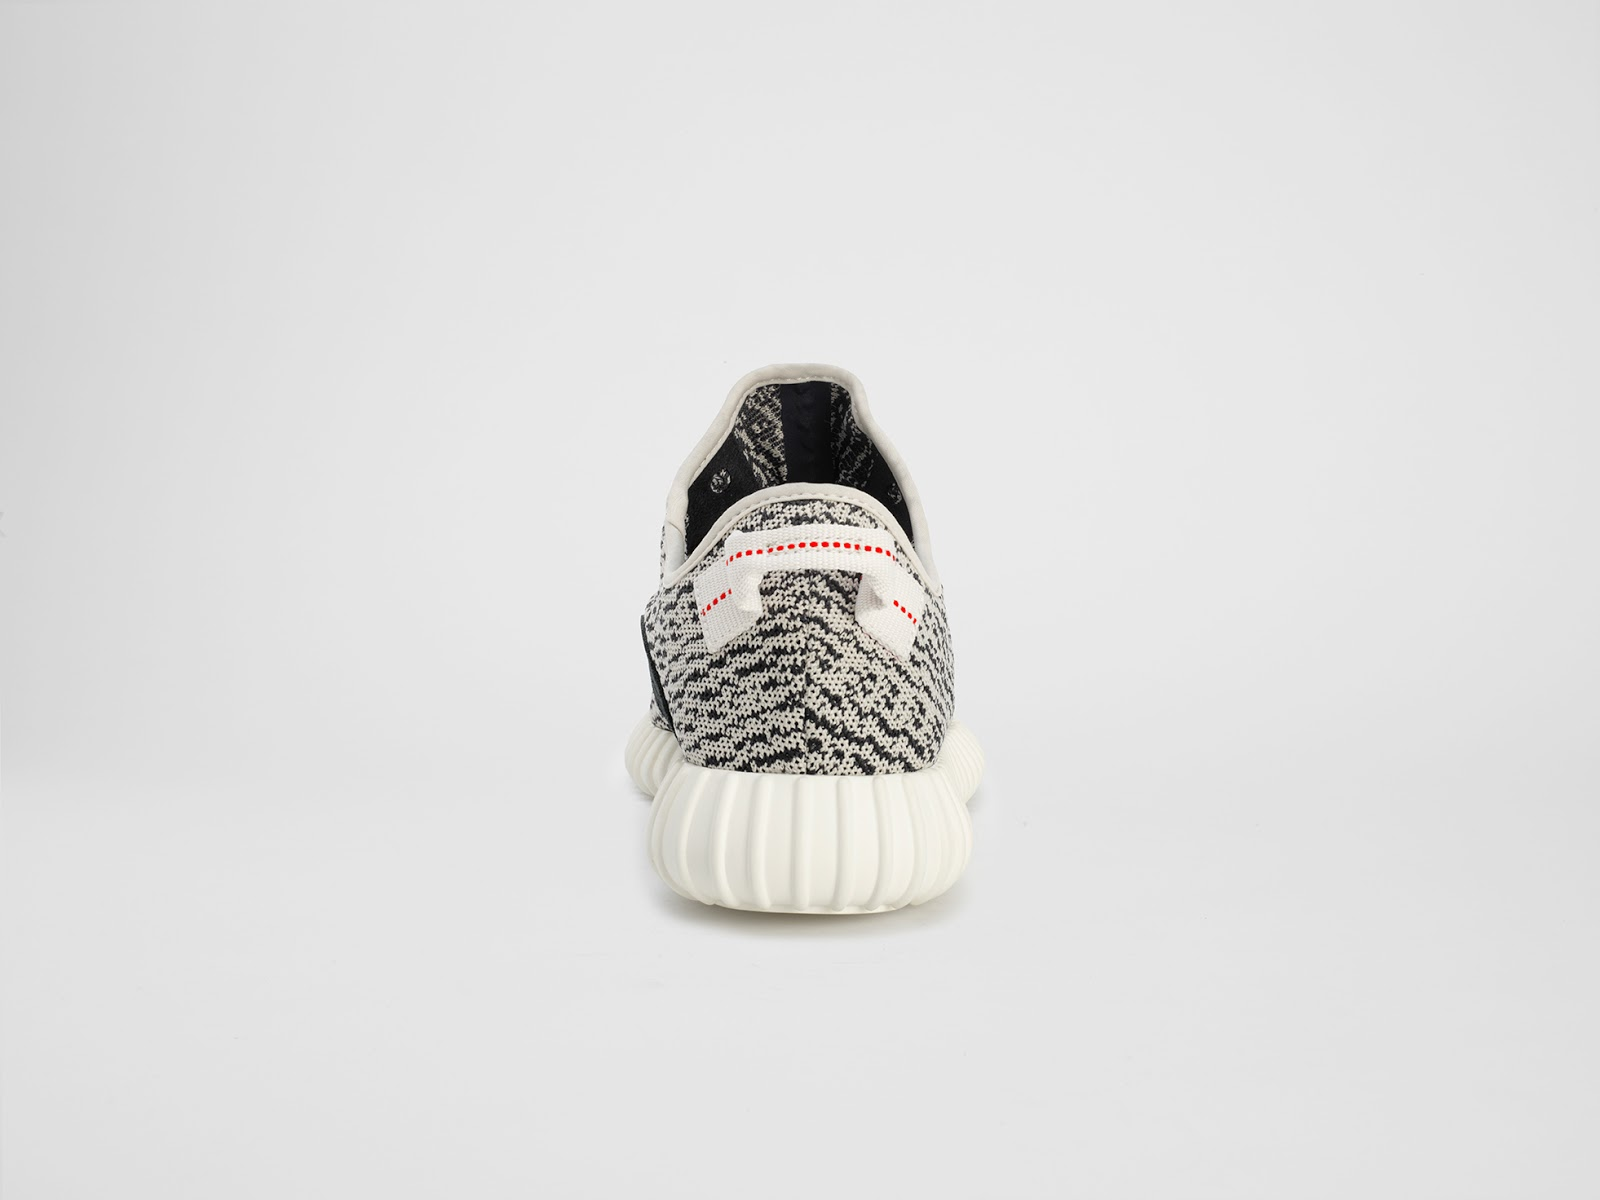 640826a4 By fusing adidas' unparalleled engineering with a timeless aesthetic, the YEEZY  BOOST 350 presents a fearless step into the future of style.